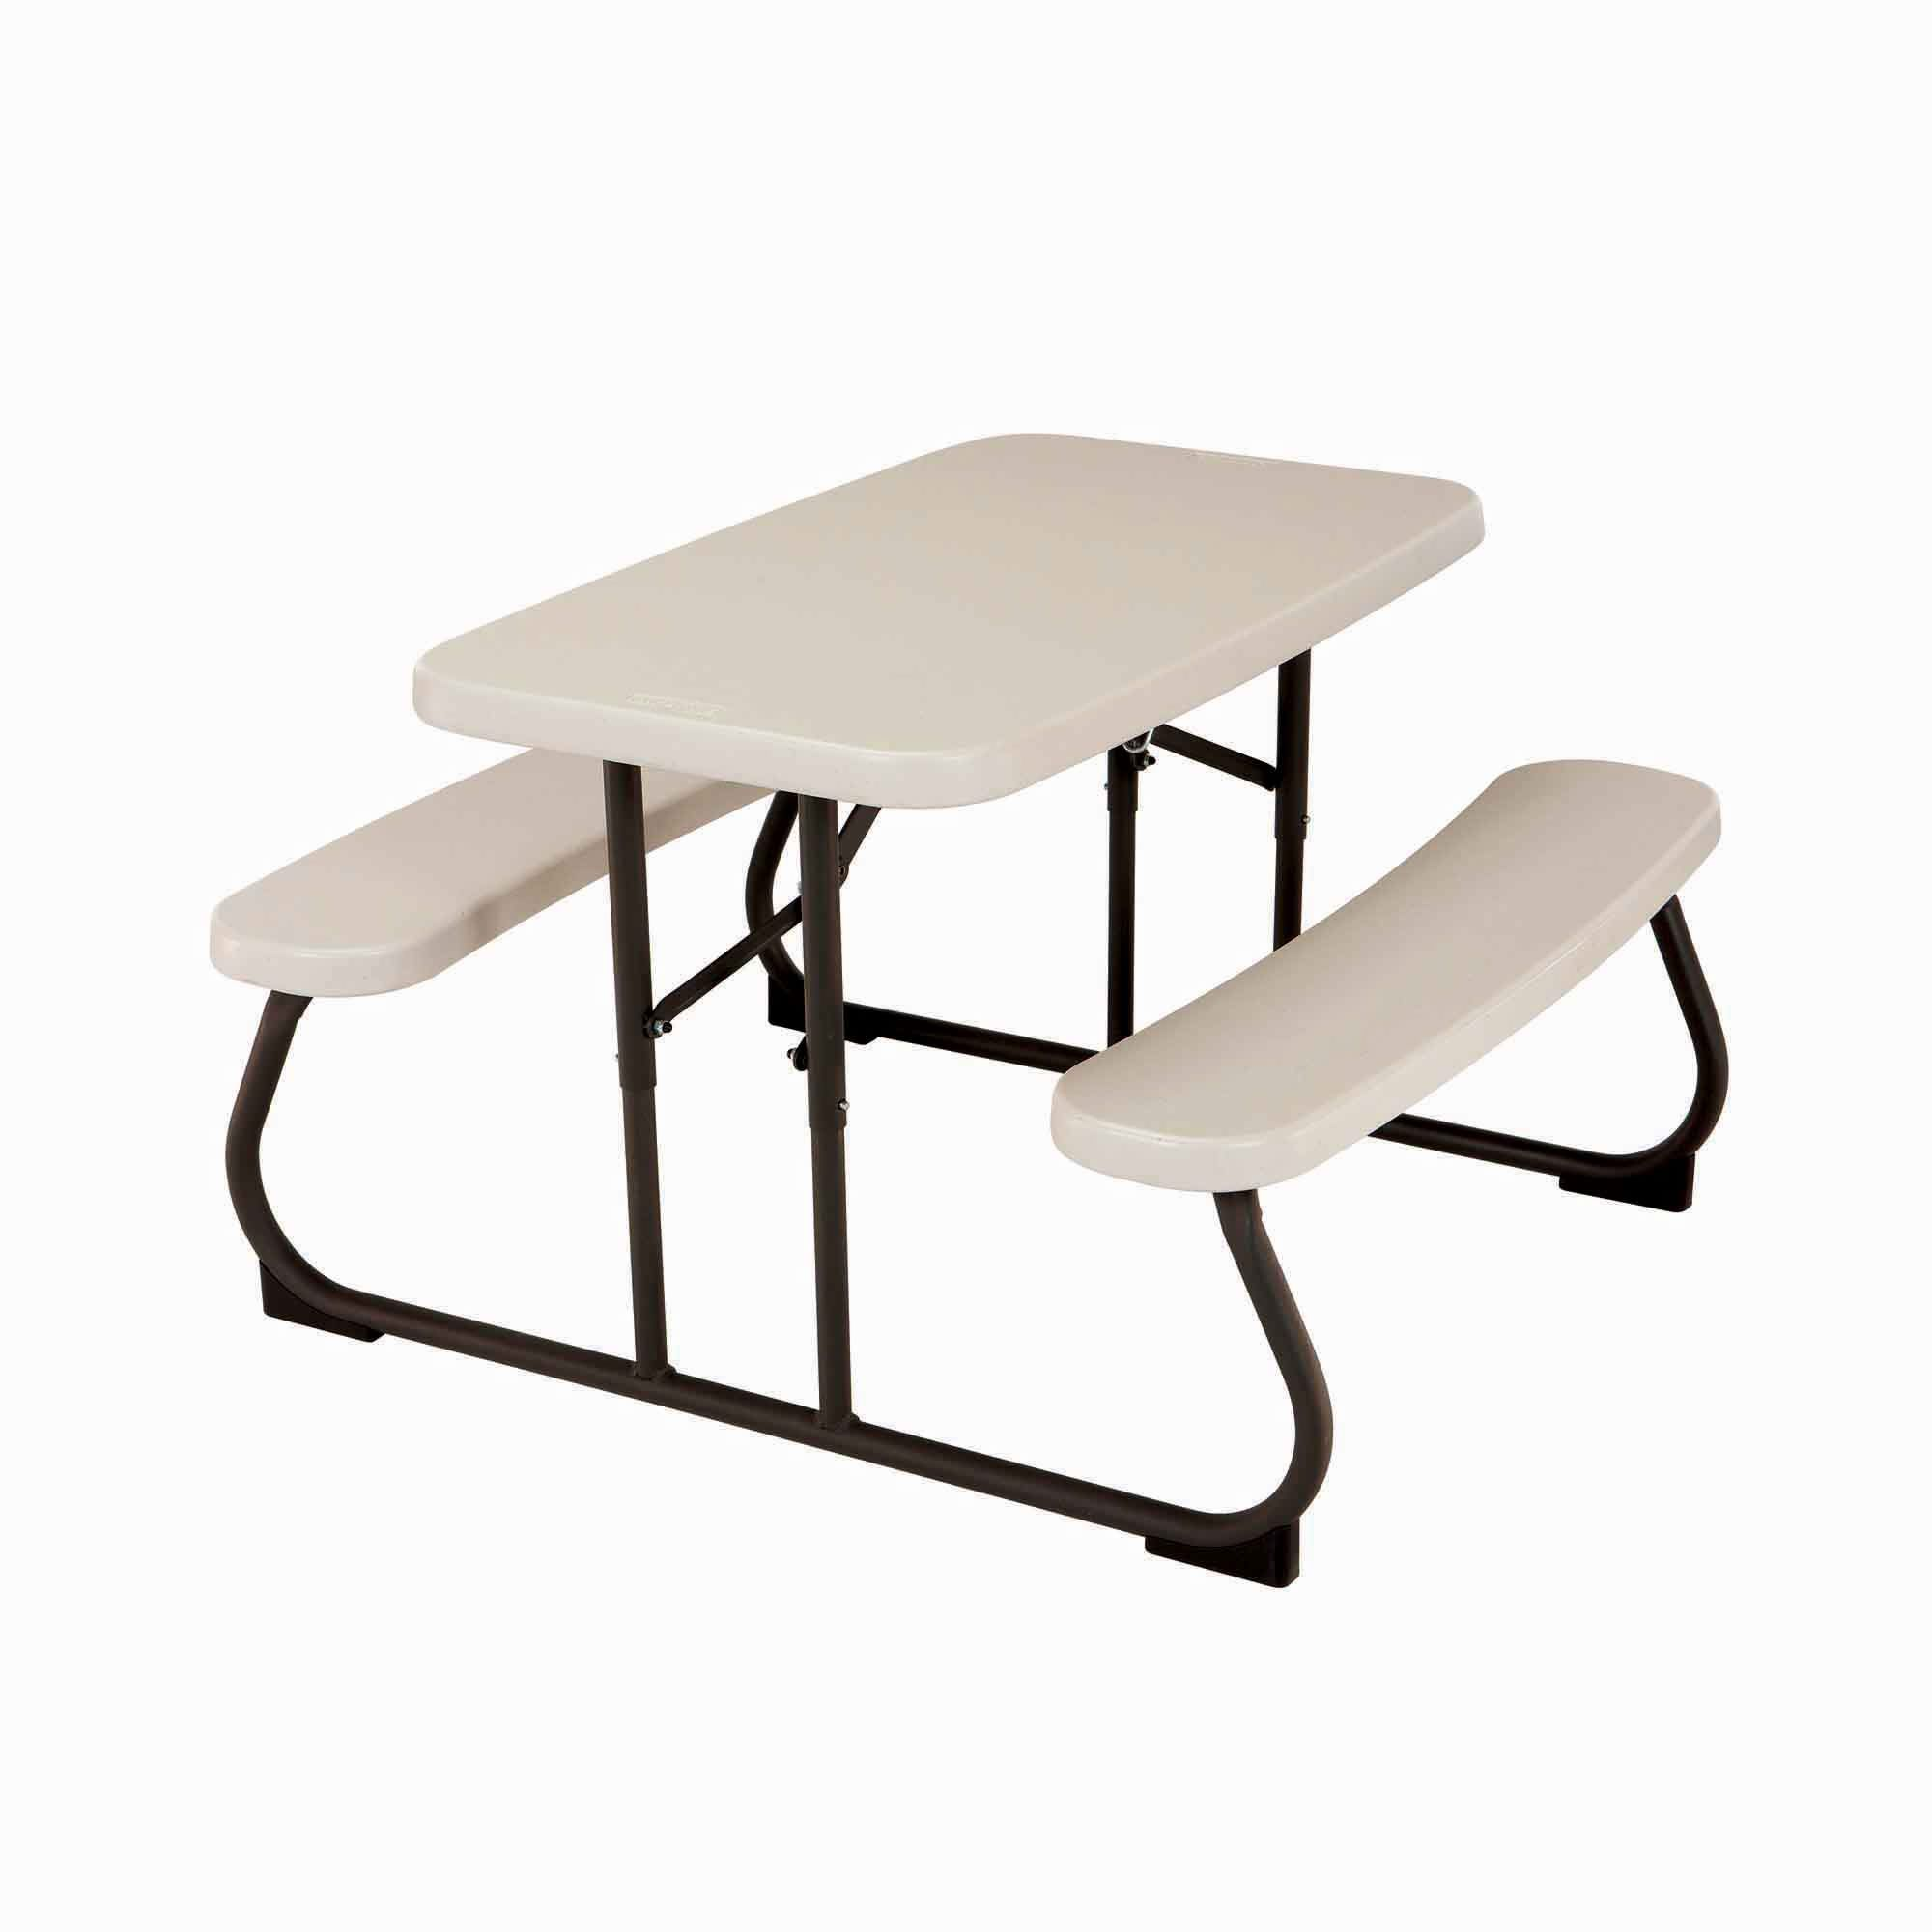 products first furniture benches folding top plastic walmart backyard lunch bistro rate picnic table lab with outdoor tags fold bench attached foot down tables round for lifetime